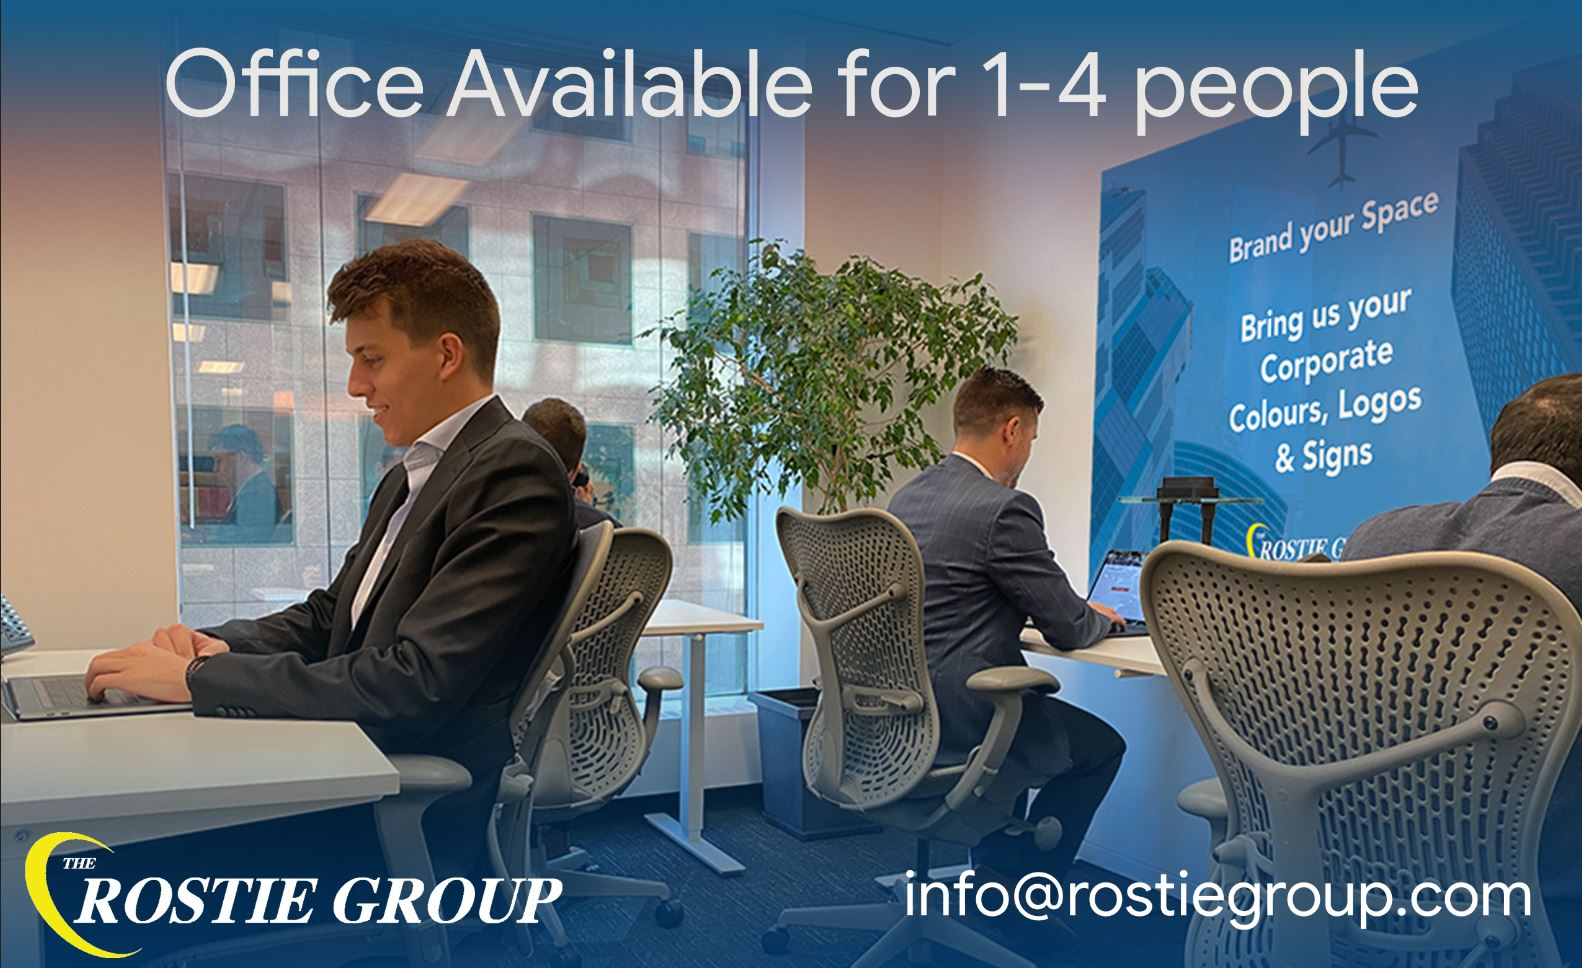 Rostie Group Available Offices Ad